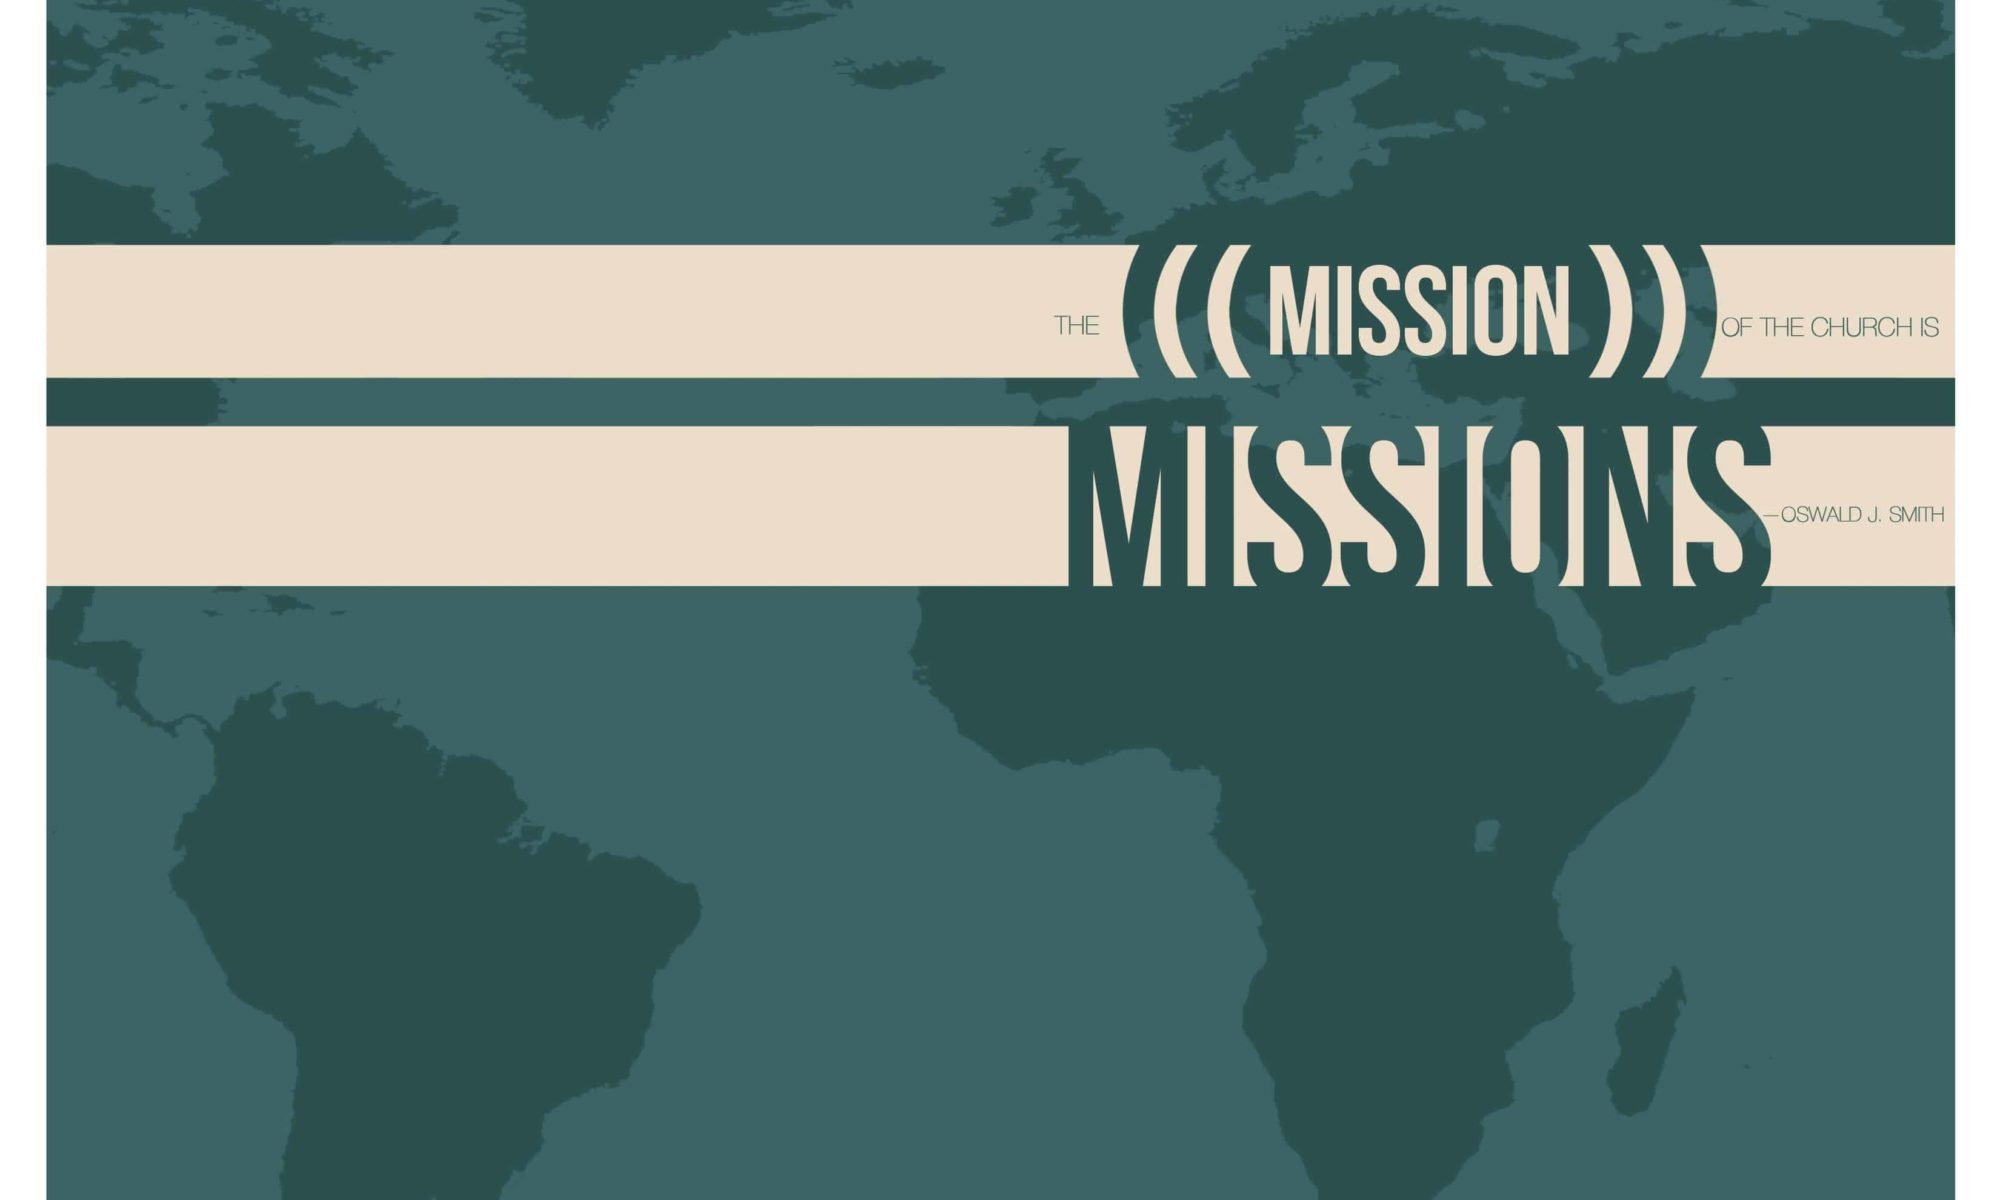 Mission of the Church bulletin